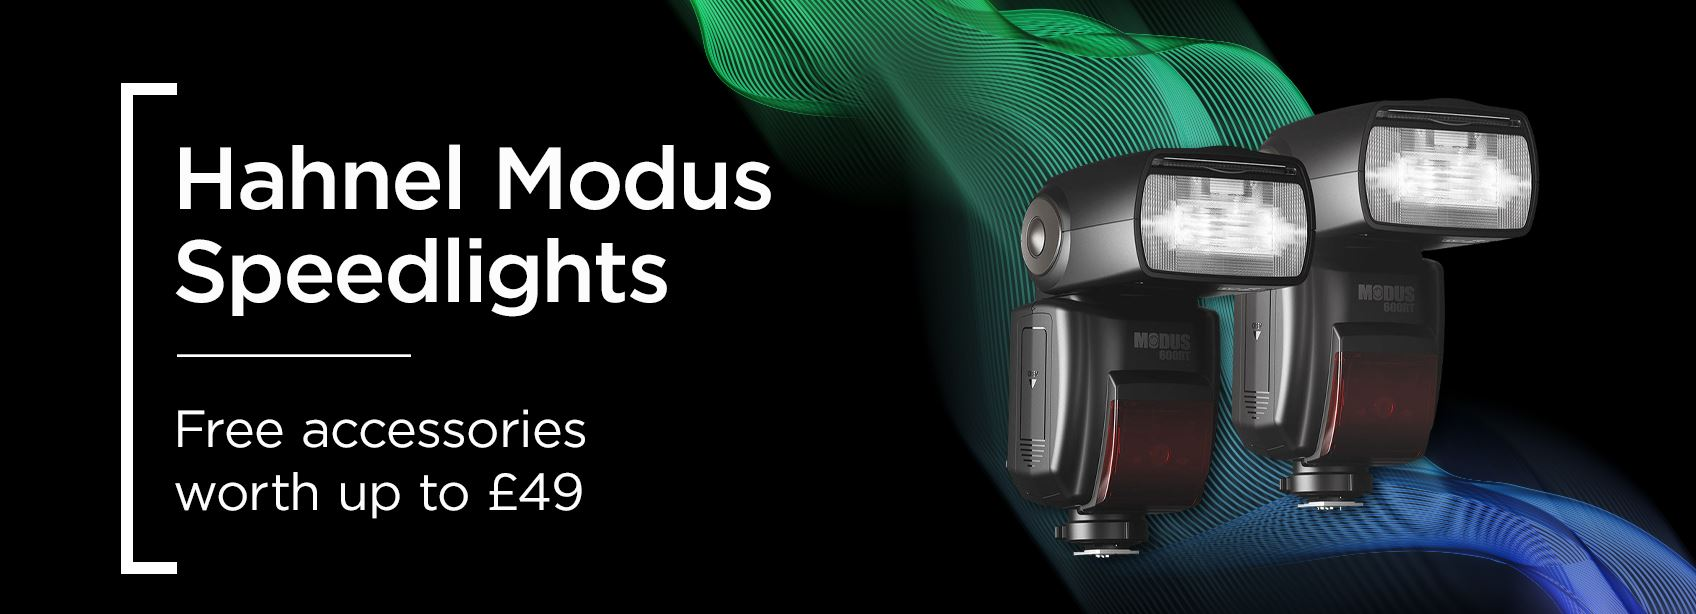 Free accessories worth up to £49 | Hahnel Modus Pro Kits & 360 Speedlights